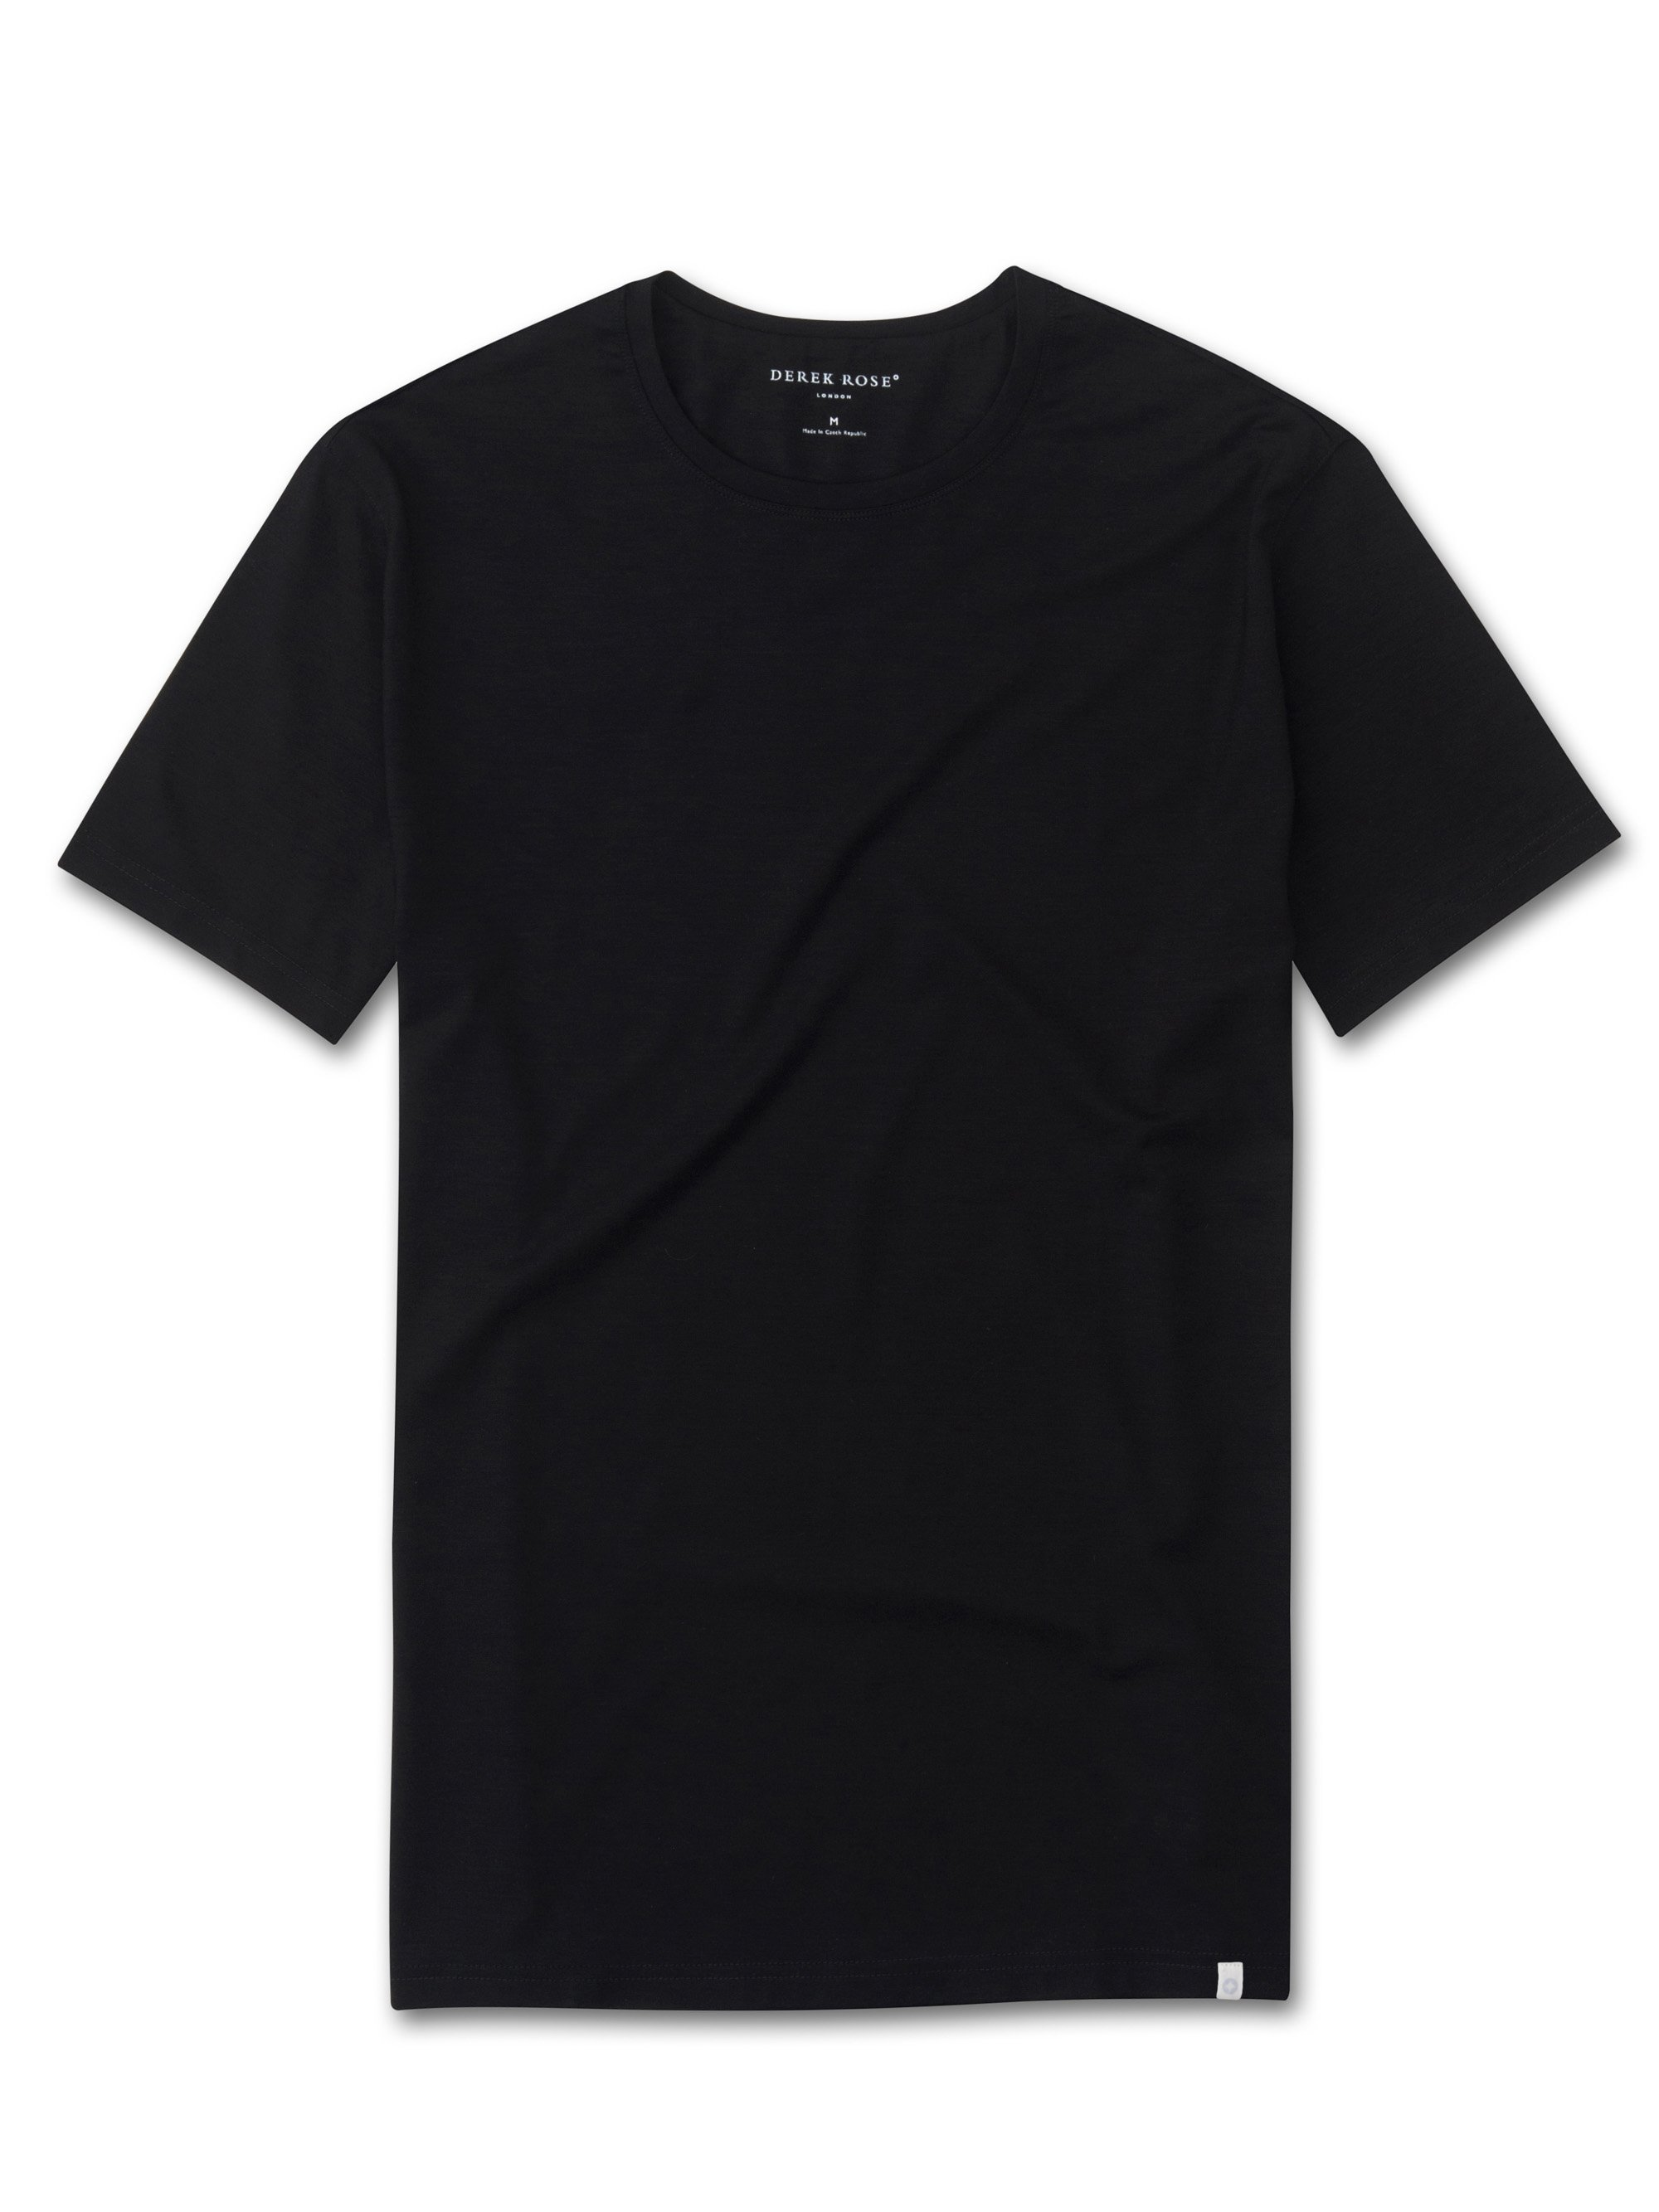 Men's Short Sleeve T-Shirt Basel Micro Modal Stretch Black